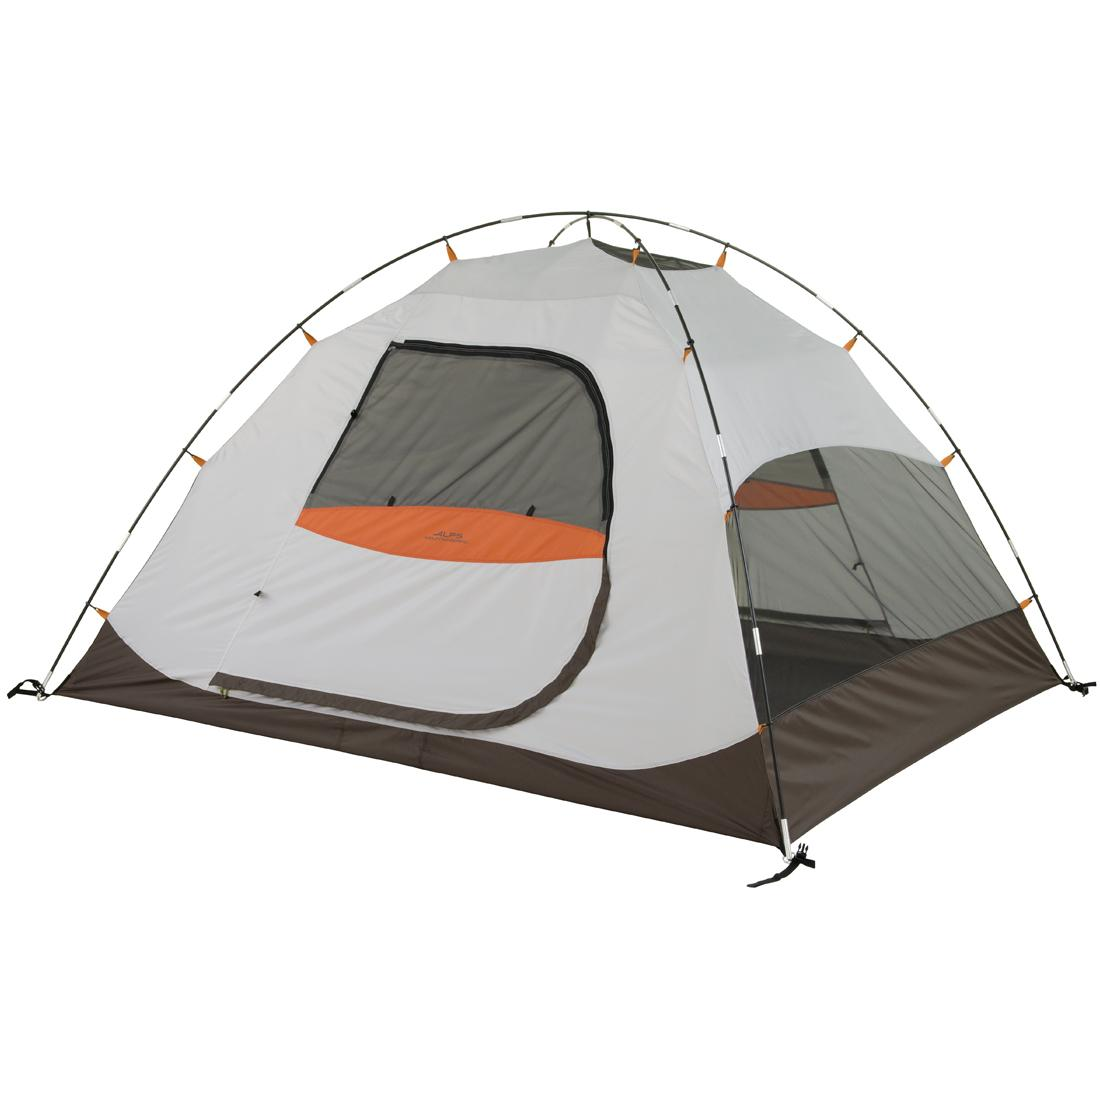 Two Person Tent : Amazon alps mountaineering meramac person tent